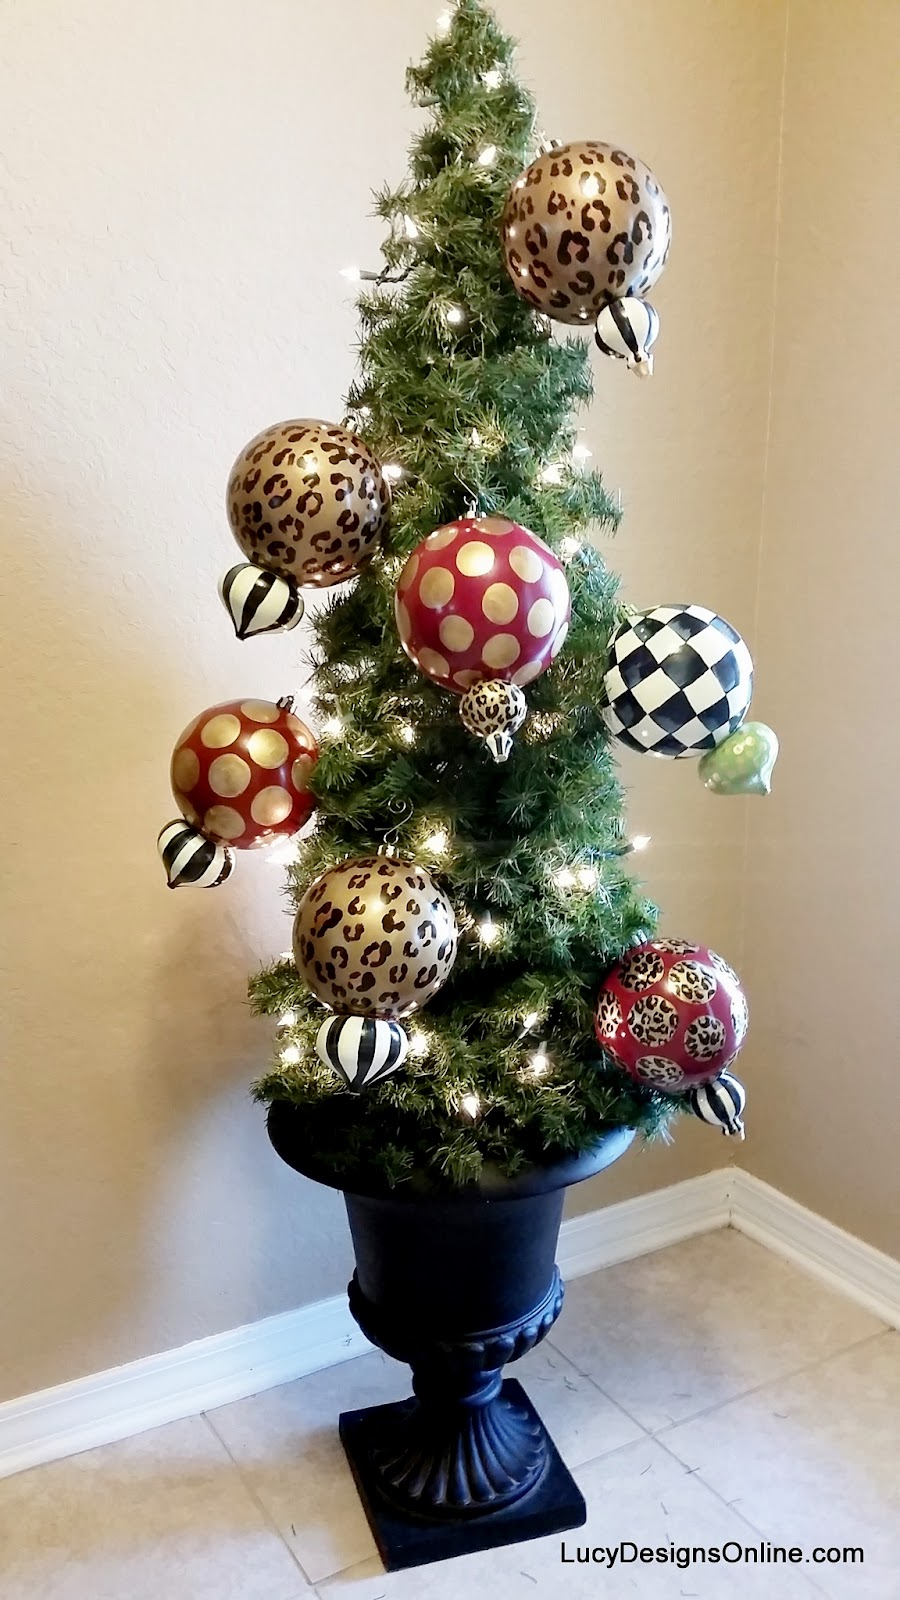 tomato cage topiary Christmas tree with hand painted ornaments